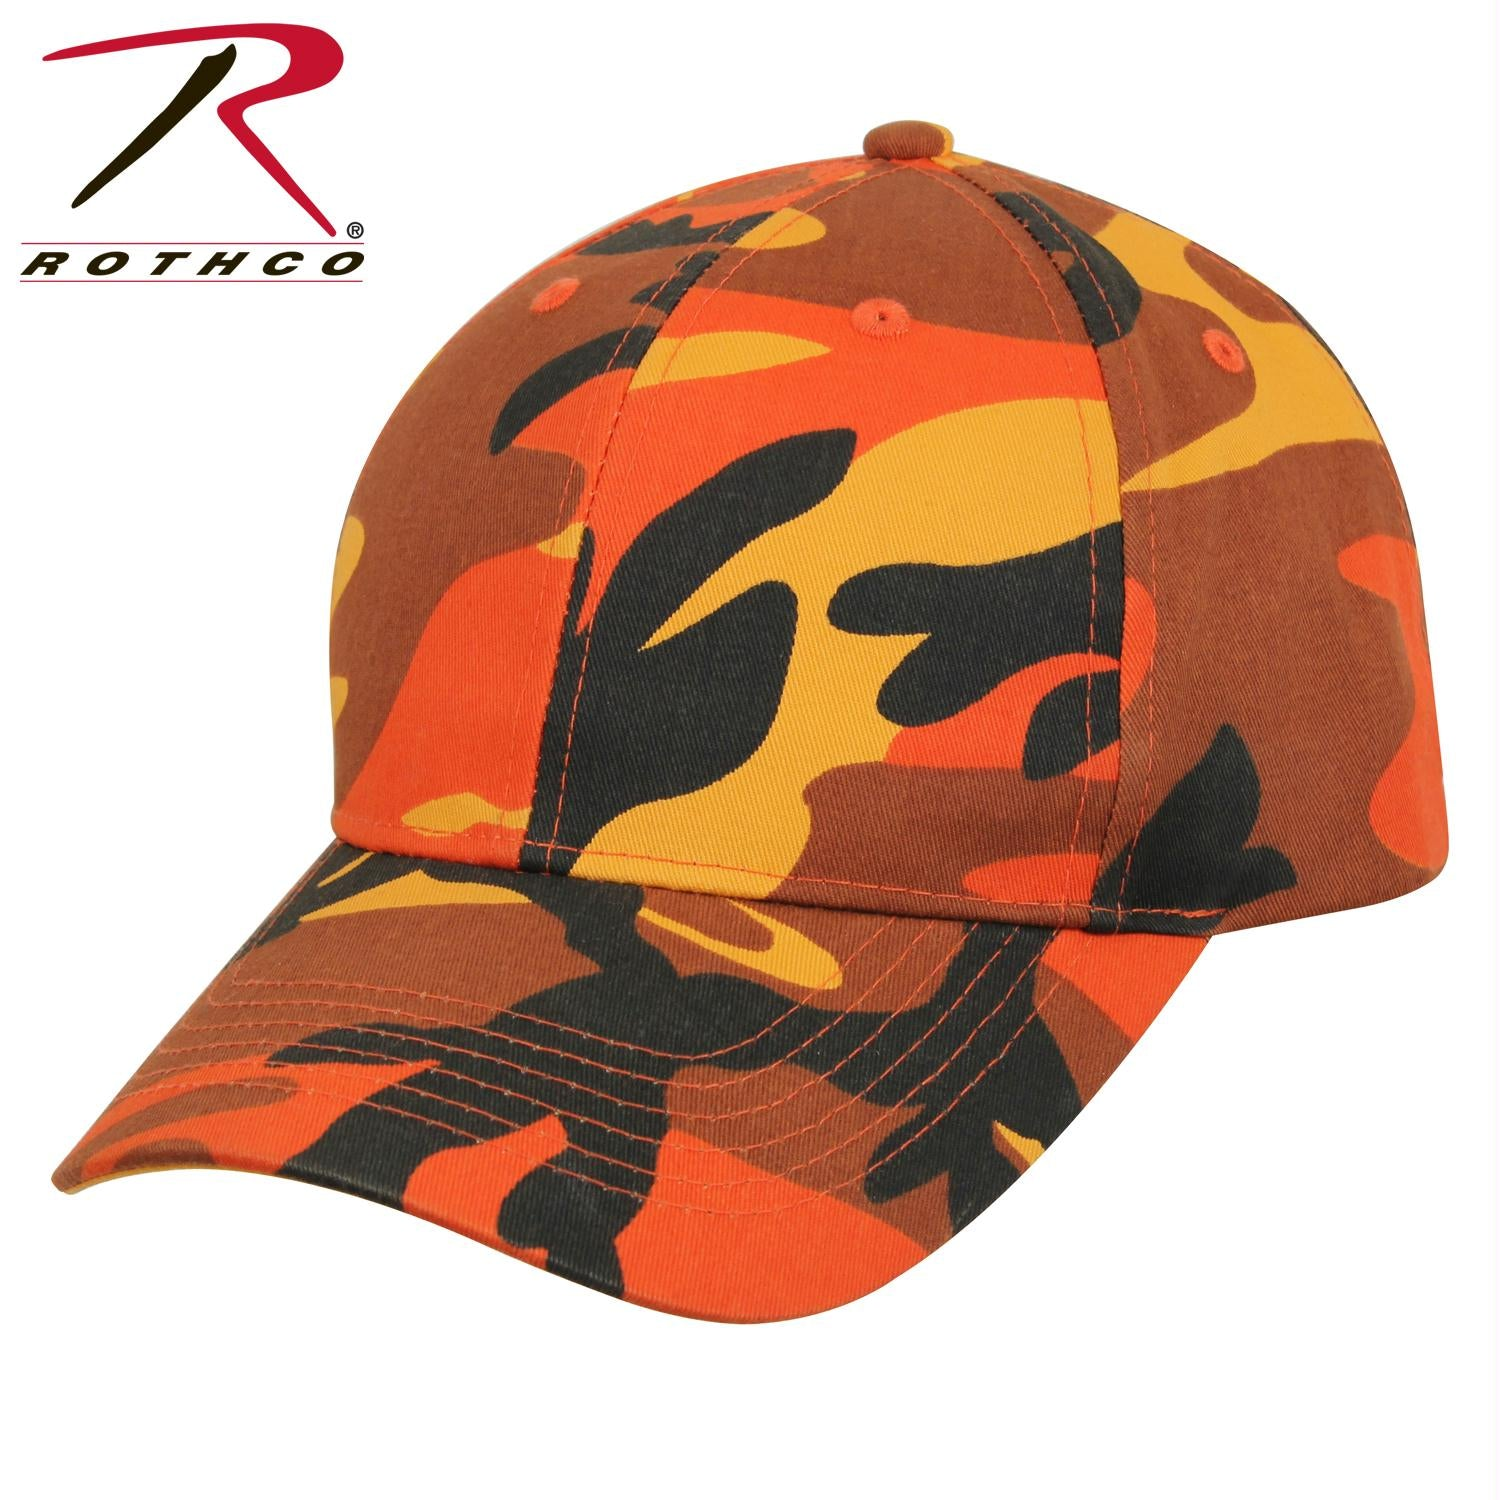 Rothco Supreme Camo Low Profile Cap - Savage Orange Camo / One Size